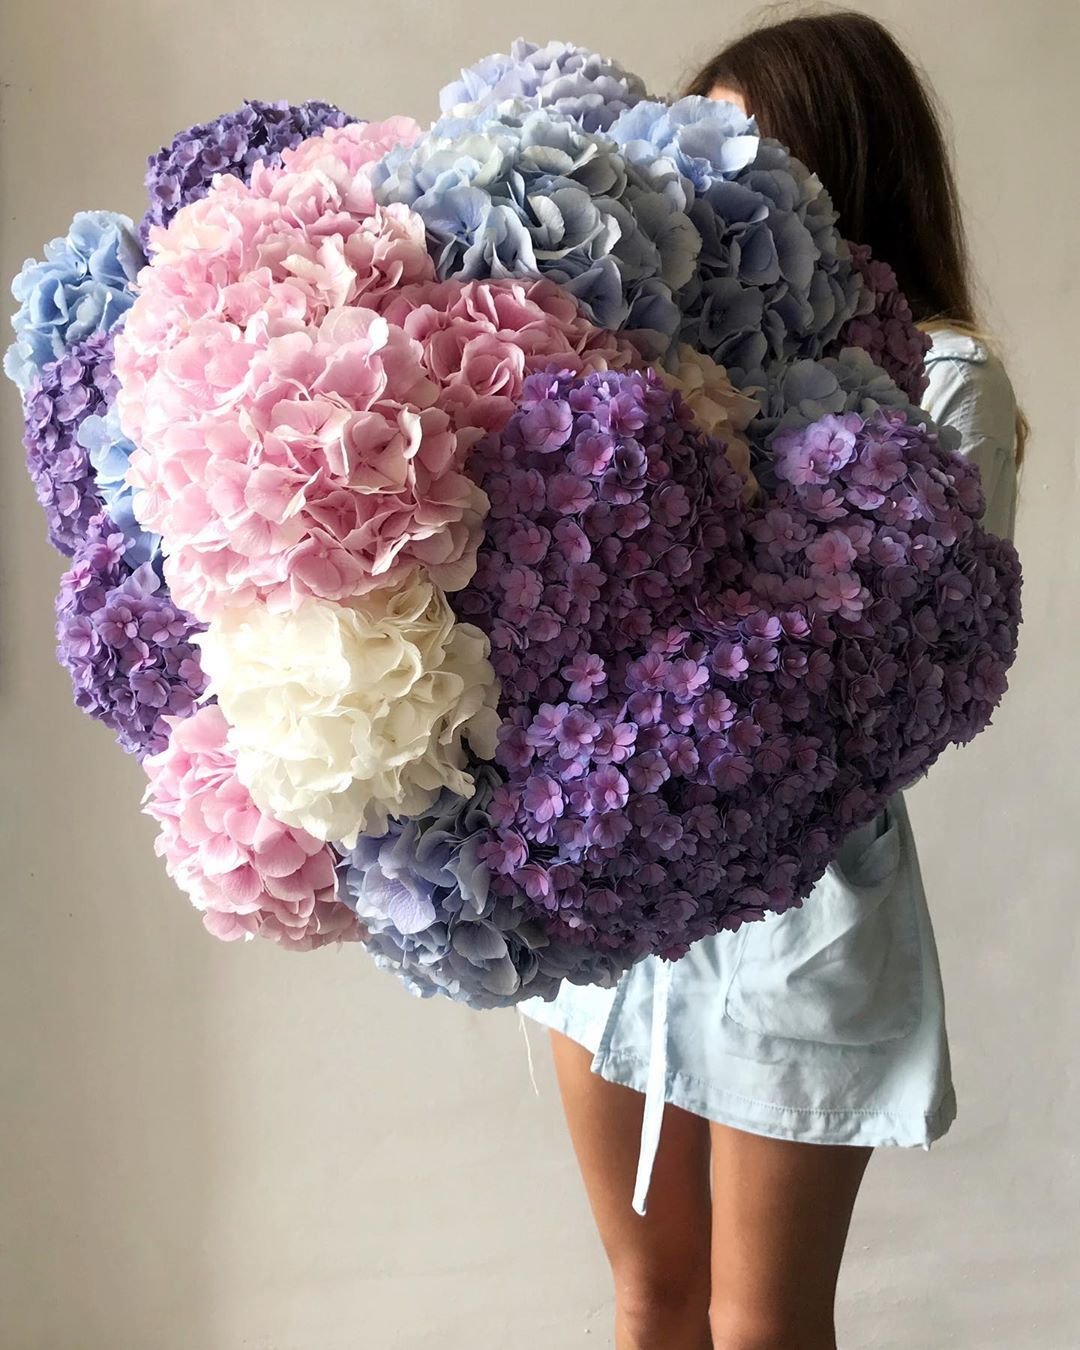 Rosenville On Instagram Hydrangea Flowers Bouquet Pastel Floraldesign Flowerbouquet Floral Flower Power Flowers Bouquet Floral Design